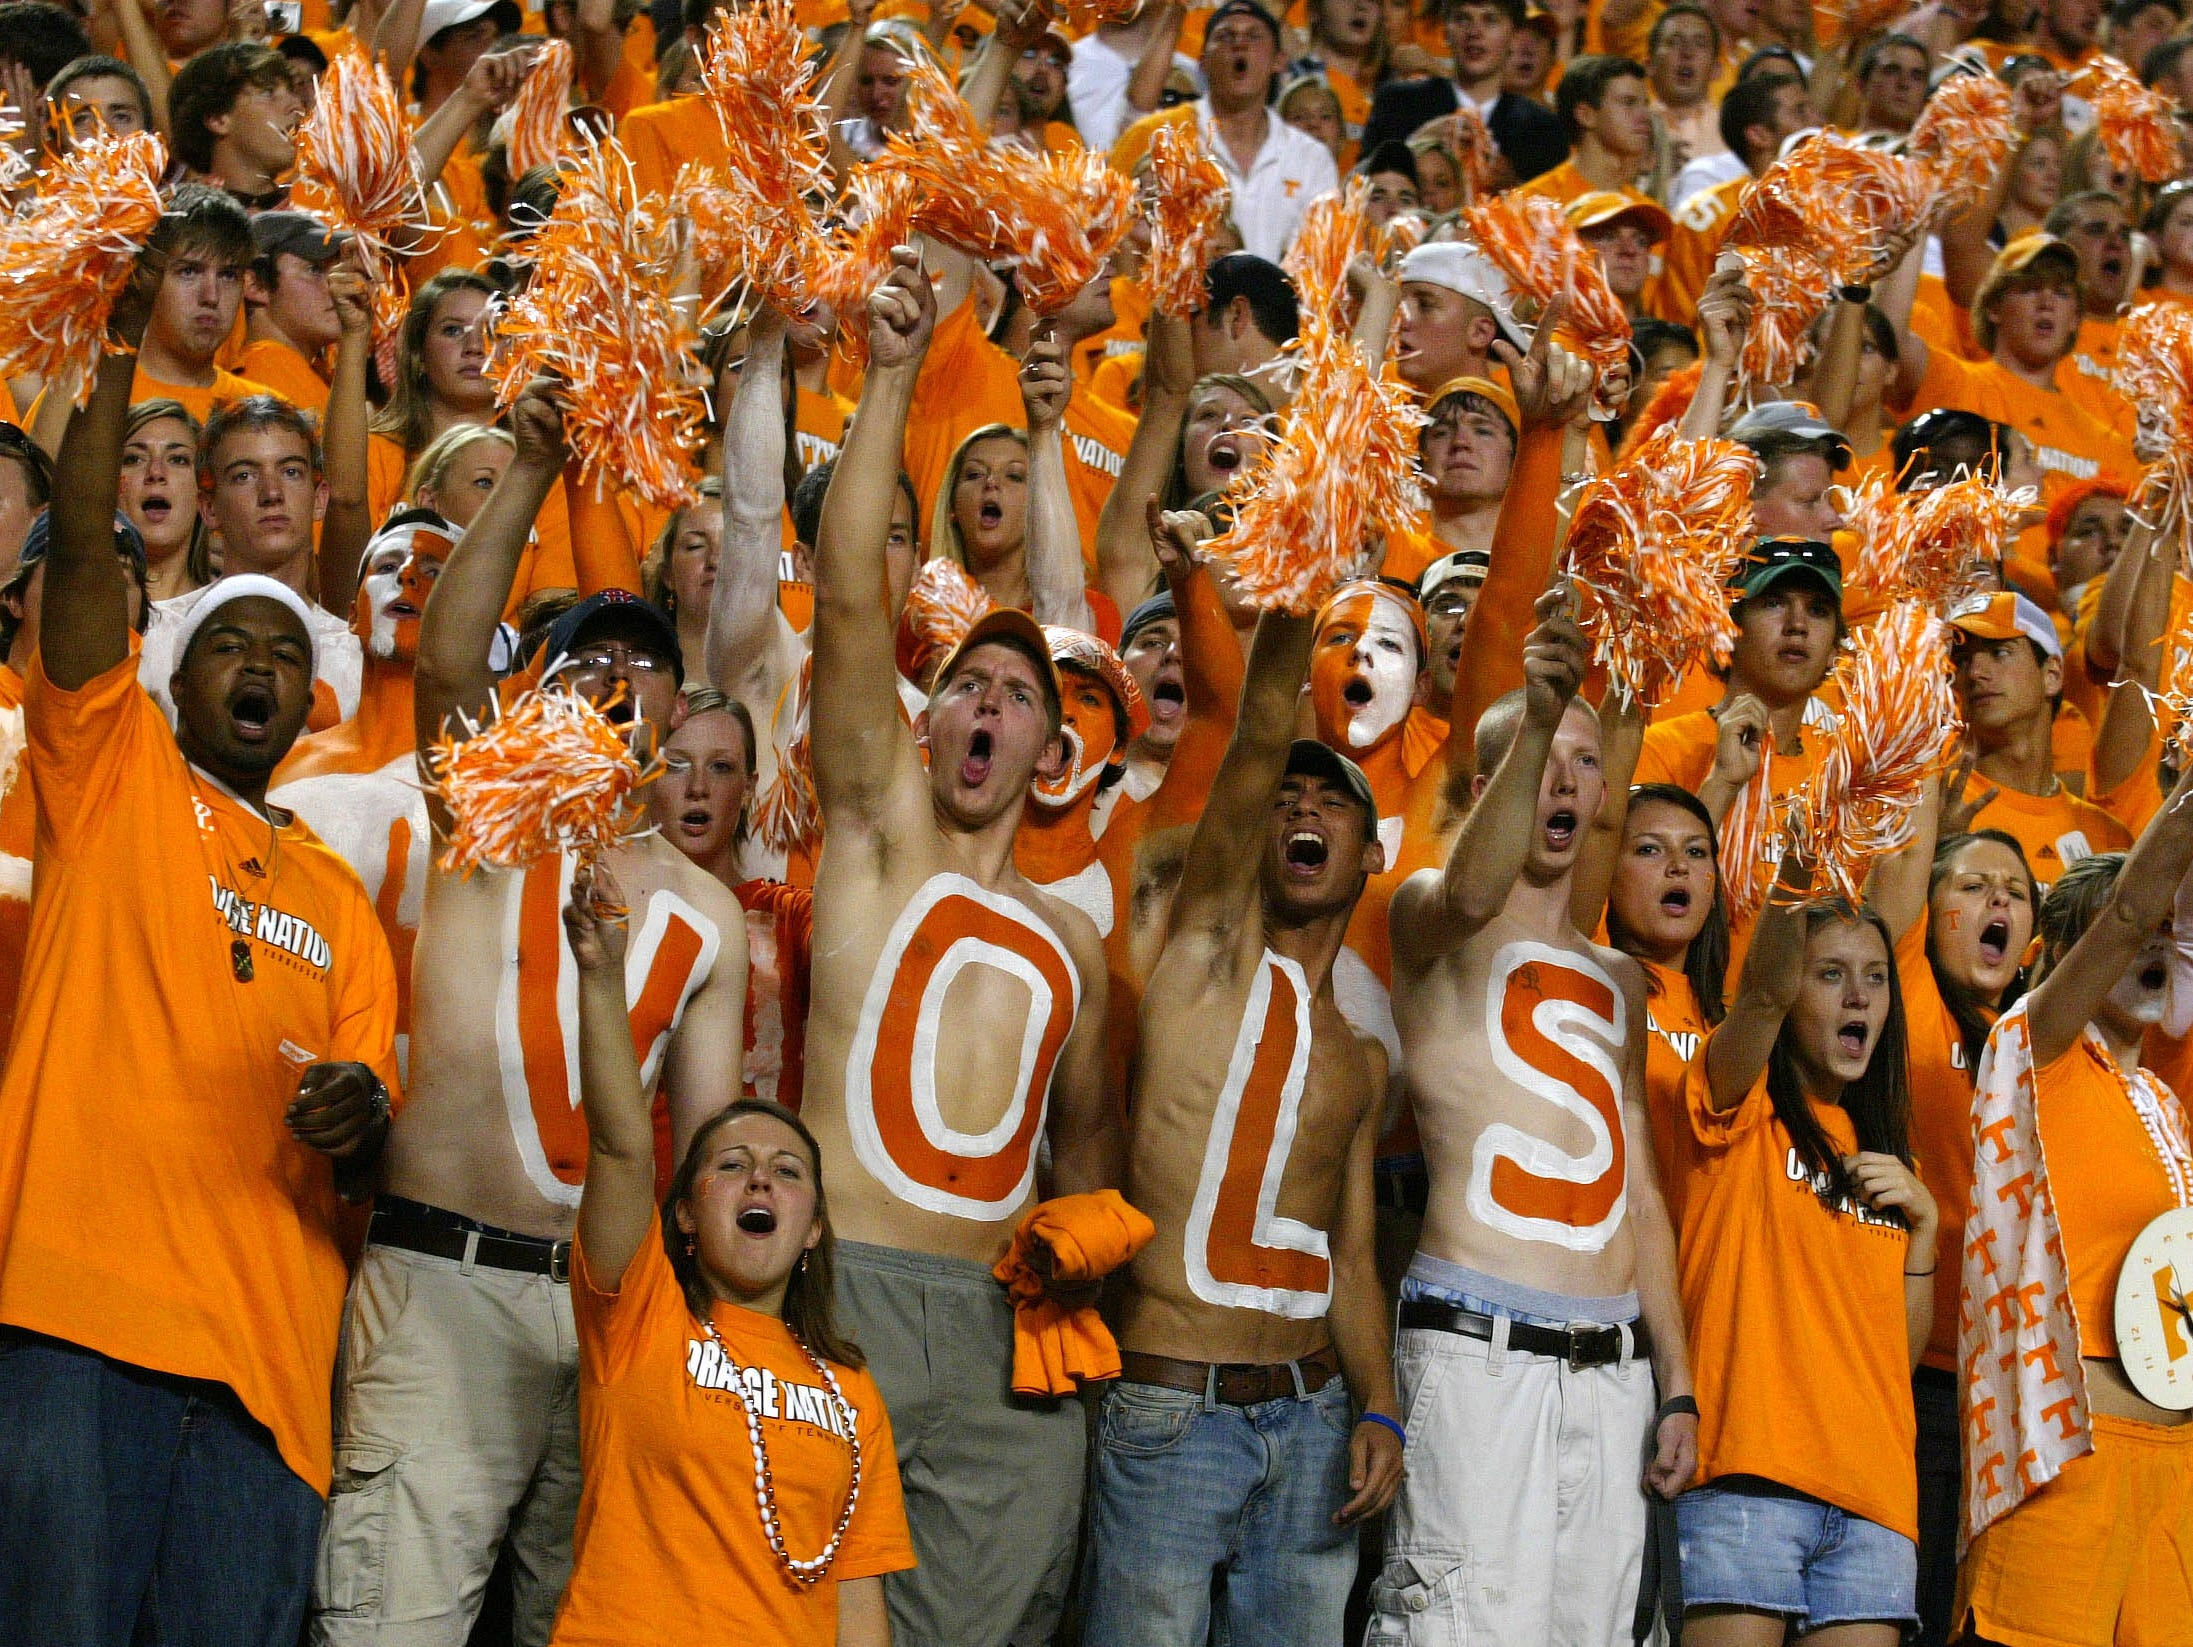 UT students cheer on the Volunteers against Florida on Saturday at Neyland Stadium. Tennessee's season record fell to 2-1 after the 21-20 loss.